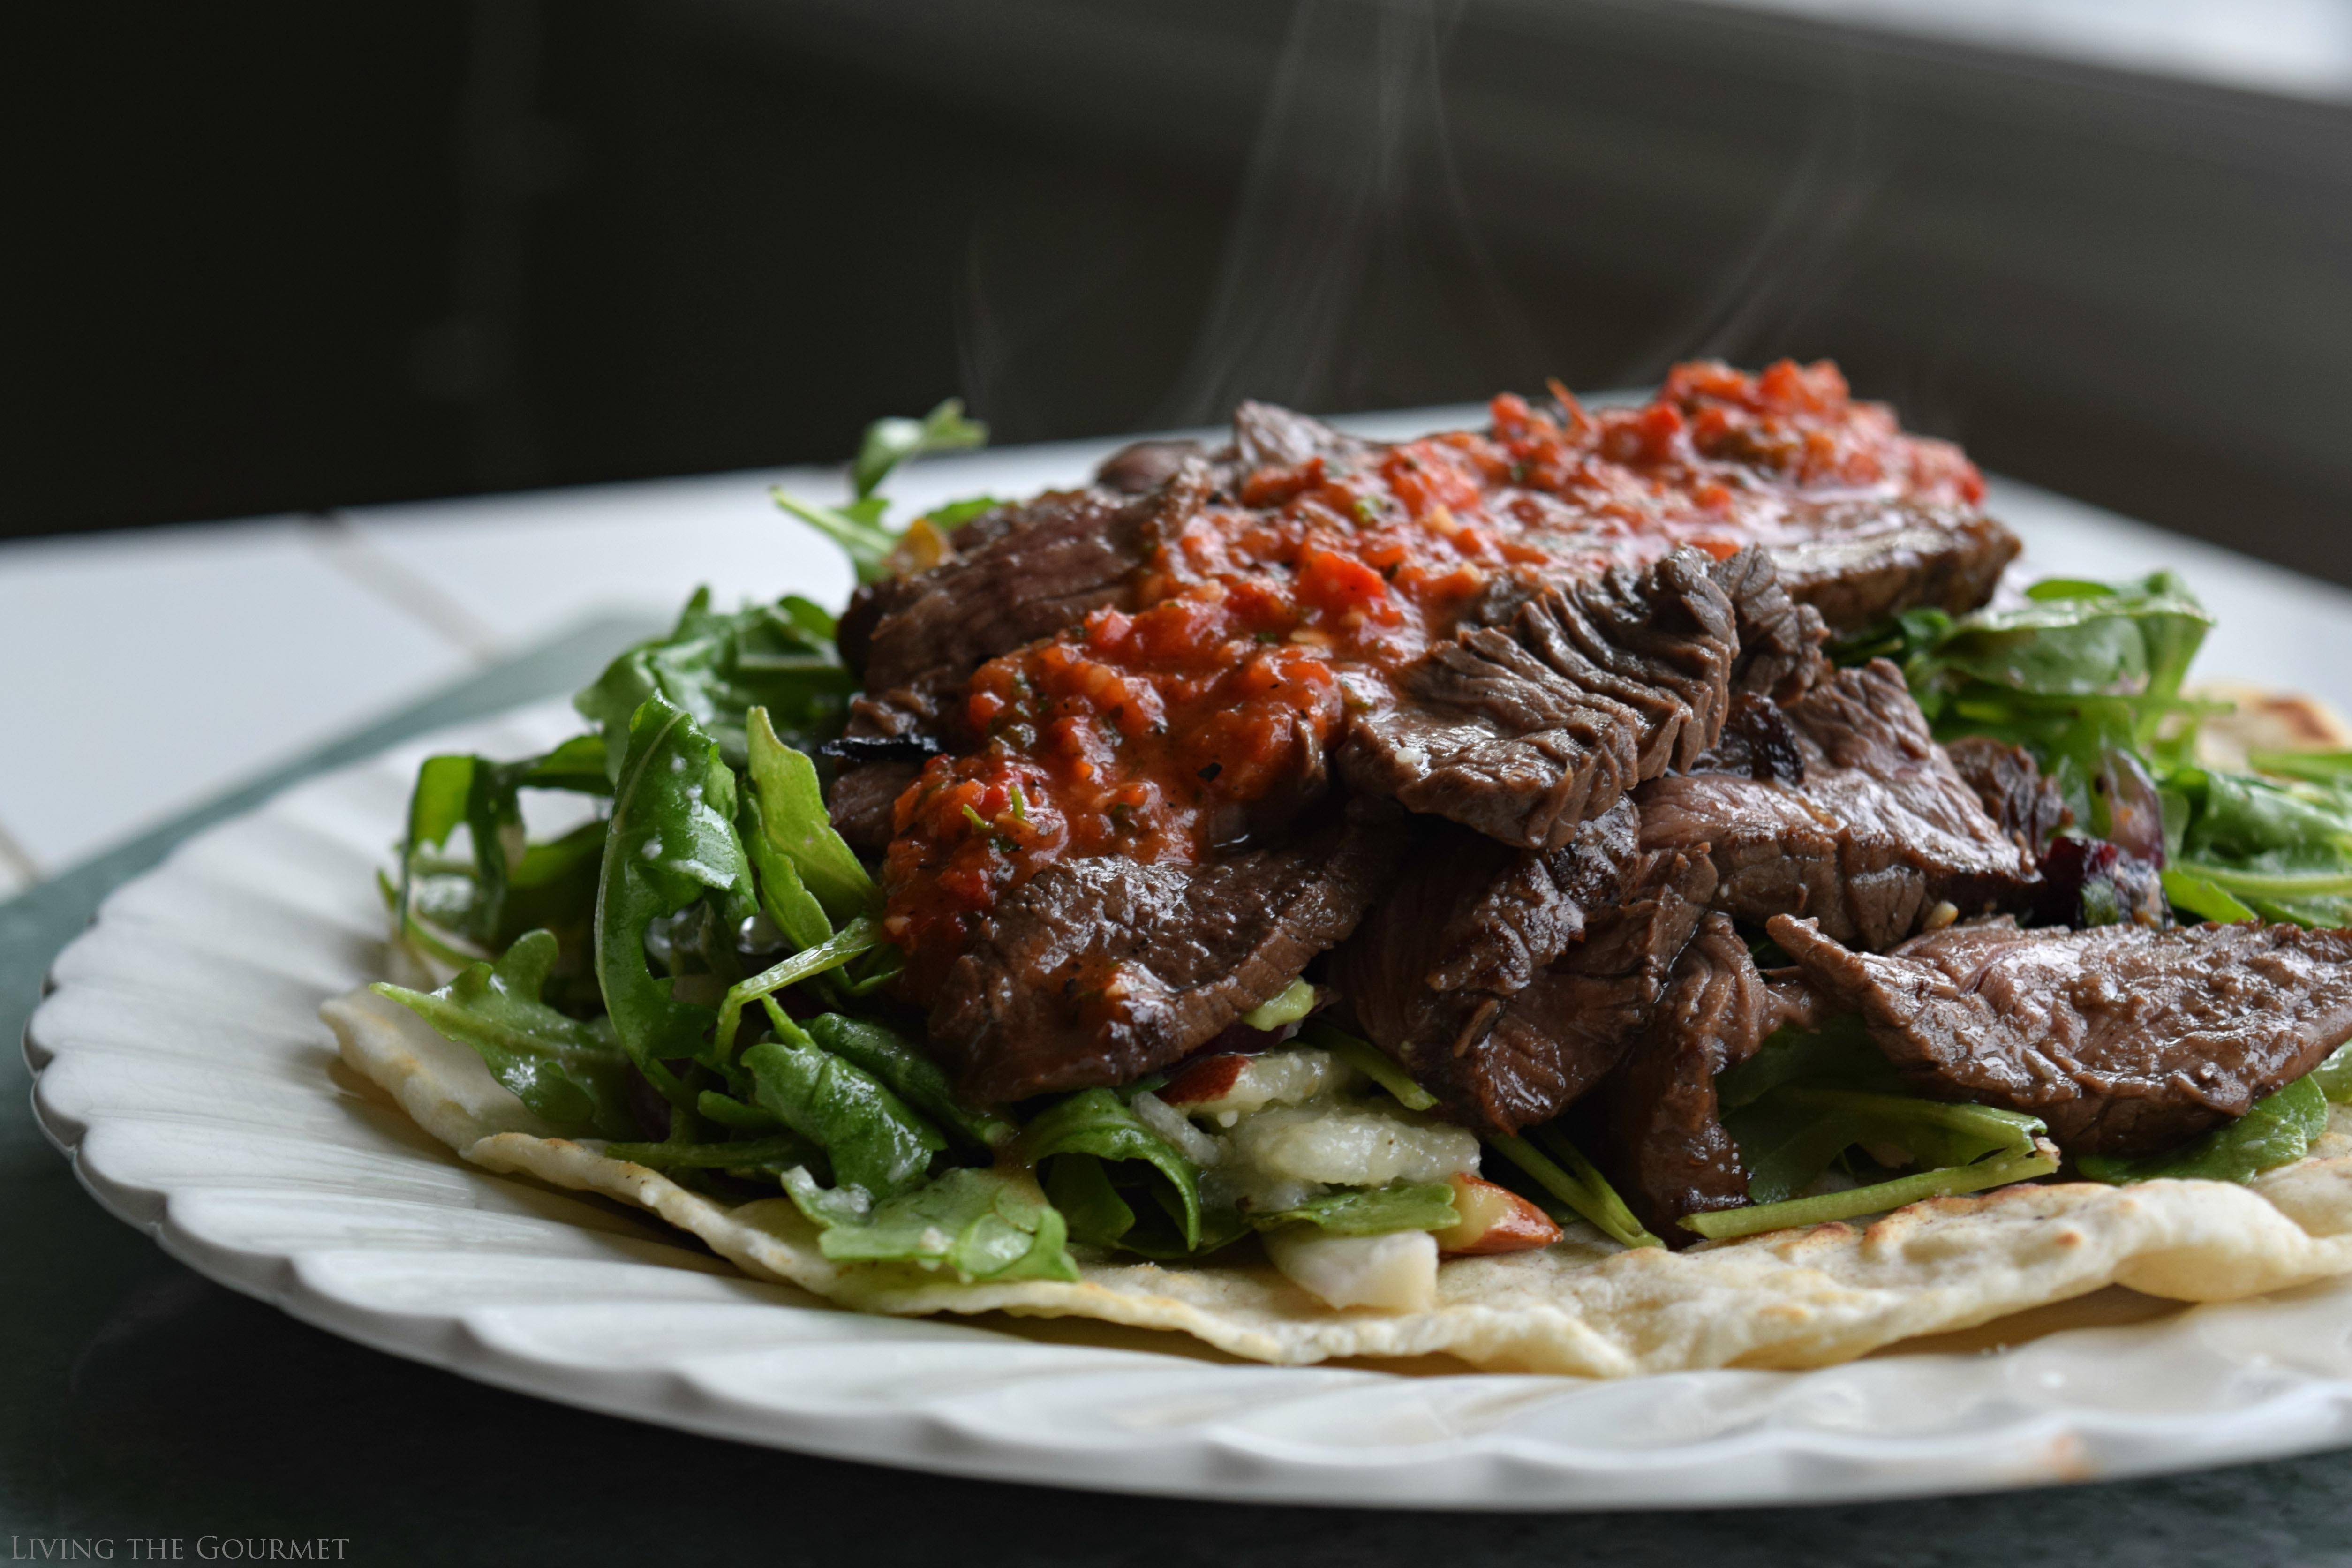 Living the Gourmet: Asian Style Sliced Steak with Fresh Bell Pepper Salsa